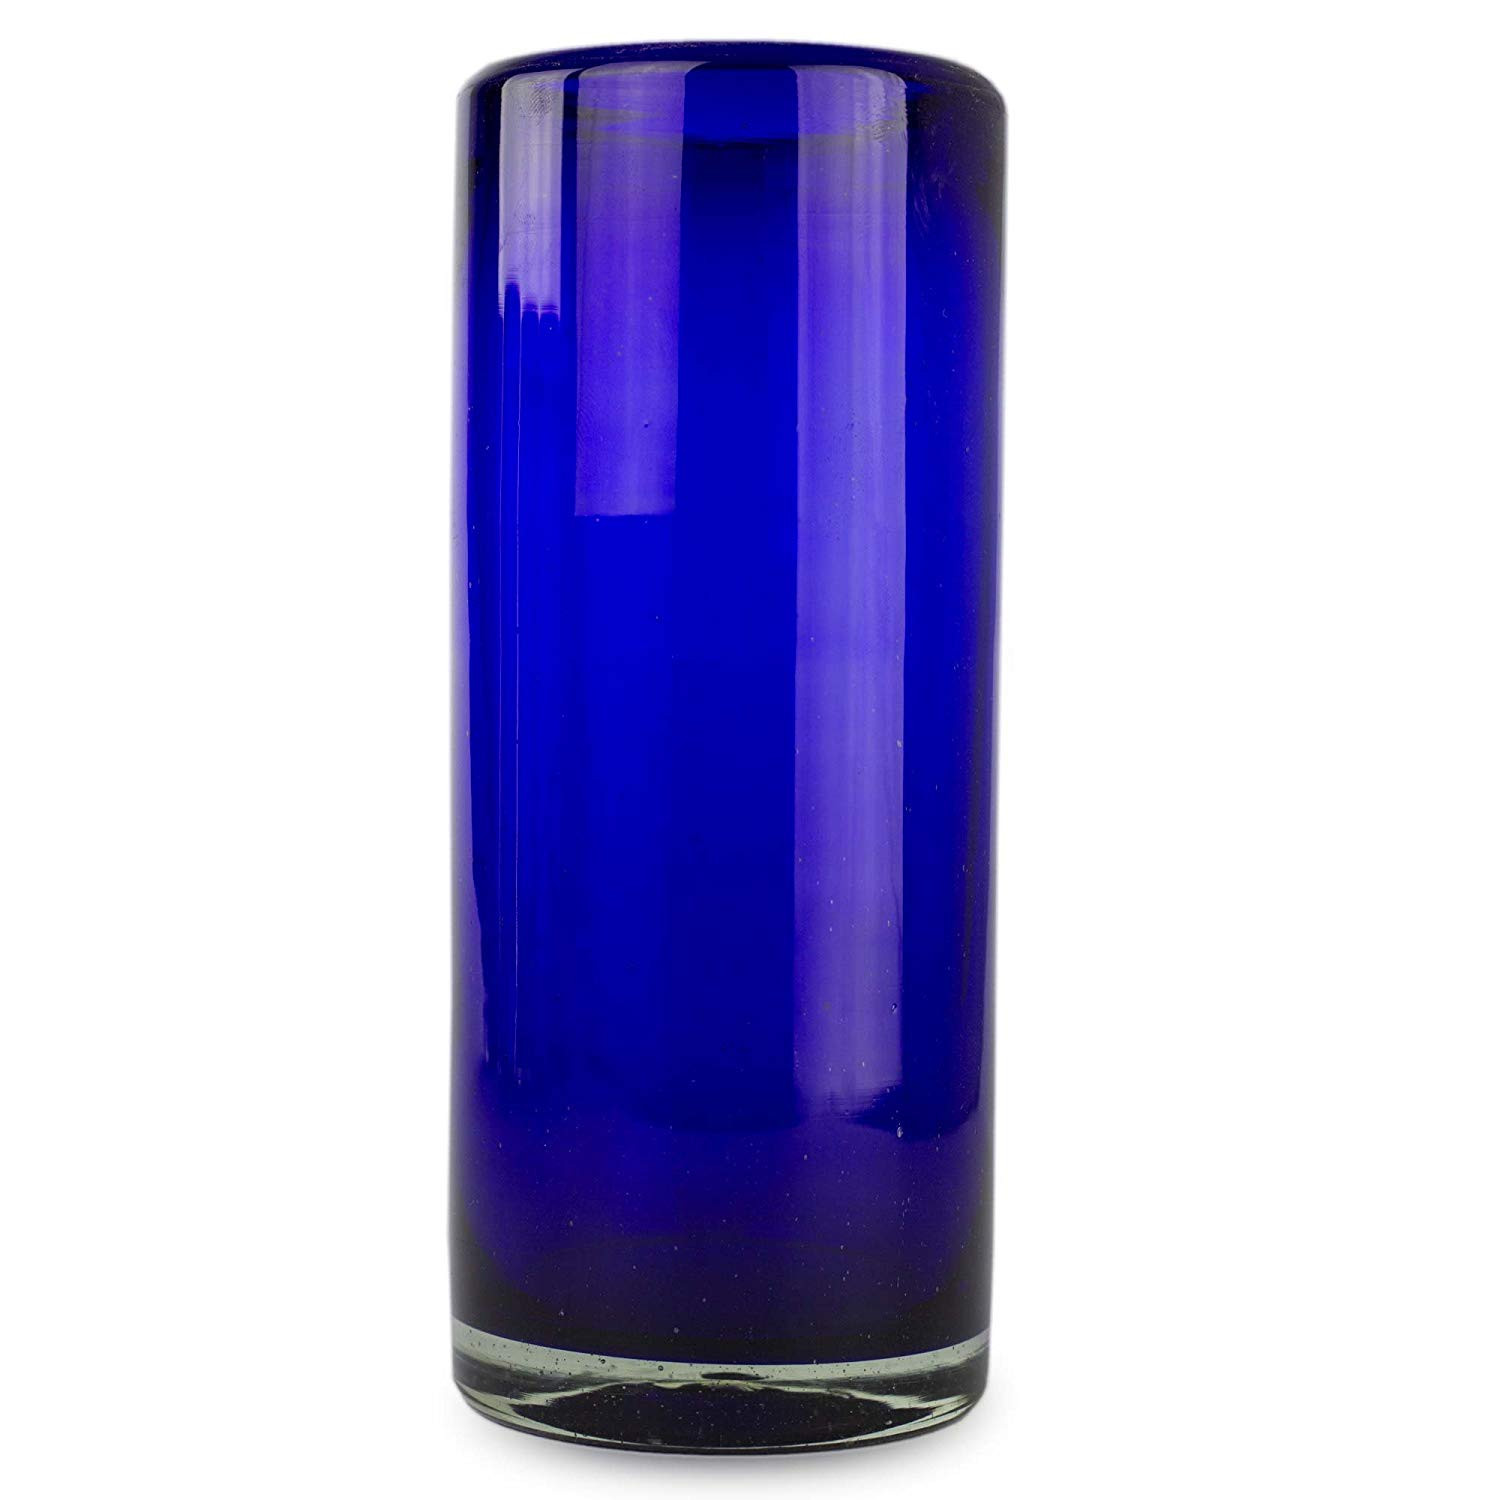 Global Views Glass Vase Of Amazon Com Novica Artisan Crafted Dark Blue Recycled Glass Hand within Amazon Com Novica Artisan Crafted Dark Blue Recycled Glass Hand Blown Cocktail Glasses 13 Oz Pure Cobalt Set Of 6 Highball Glasses